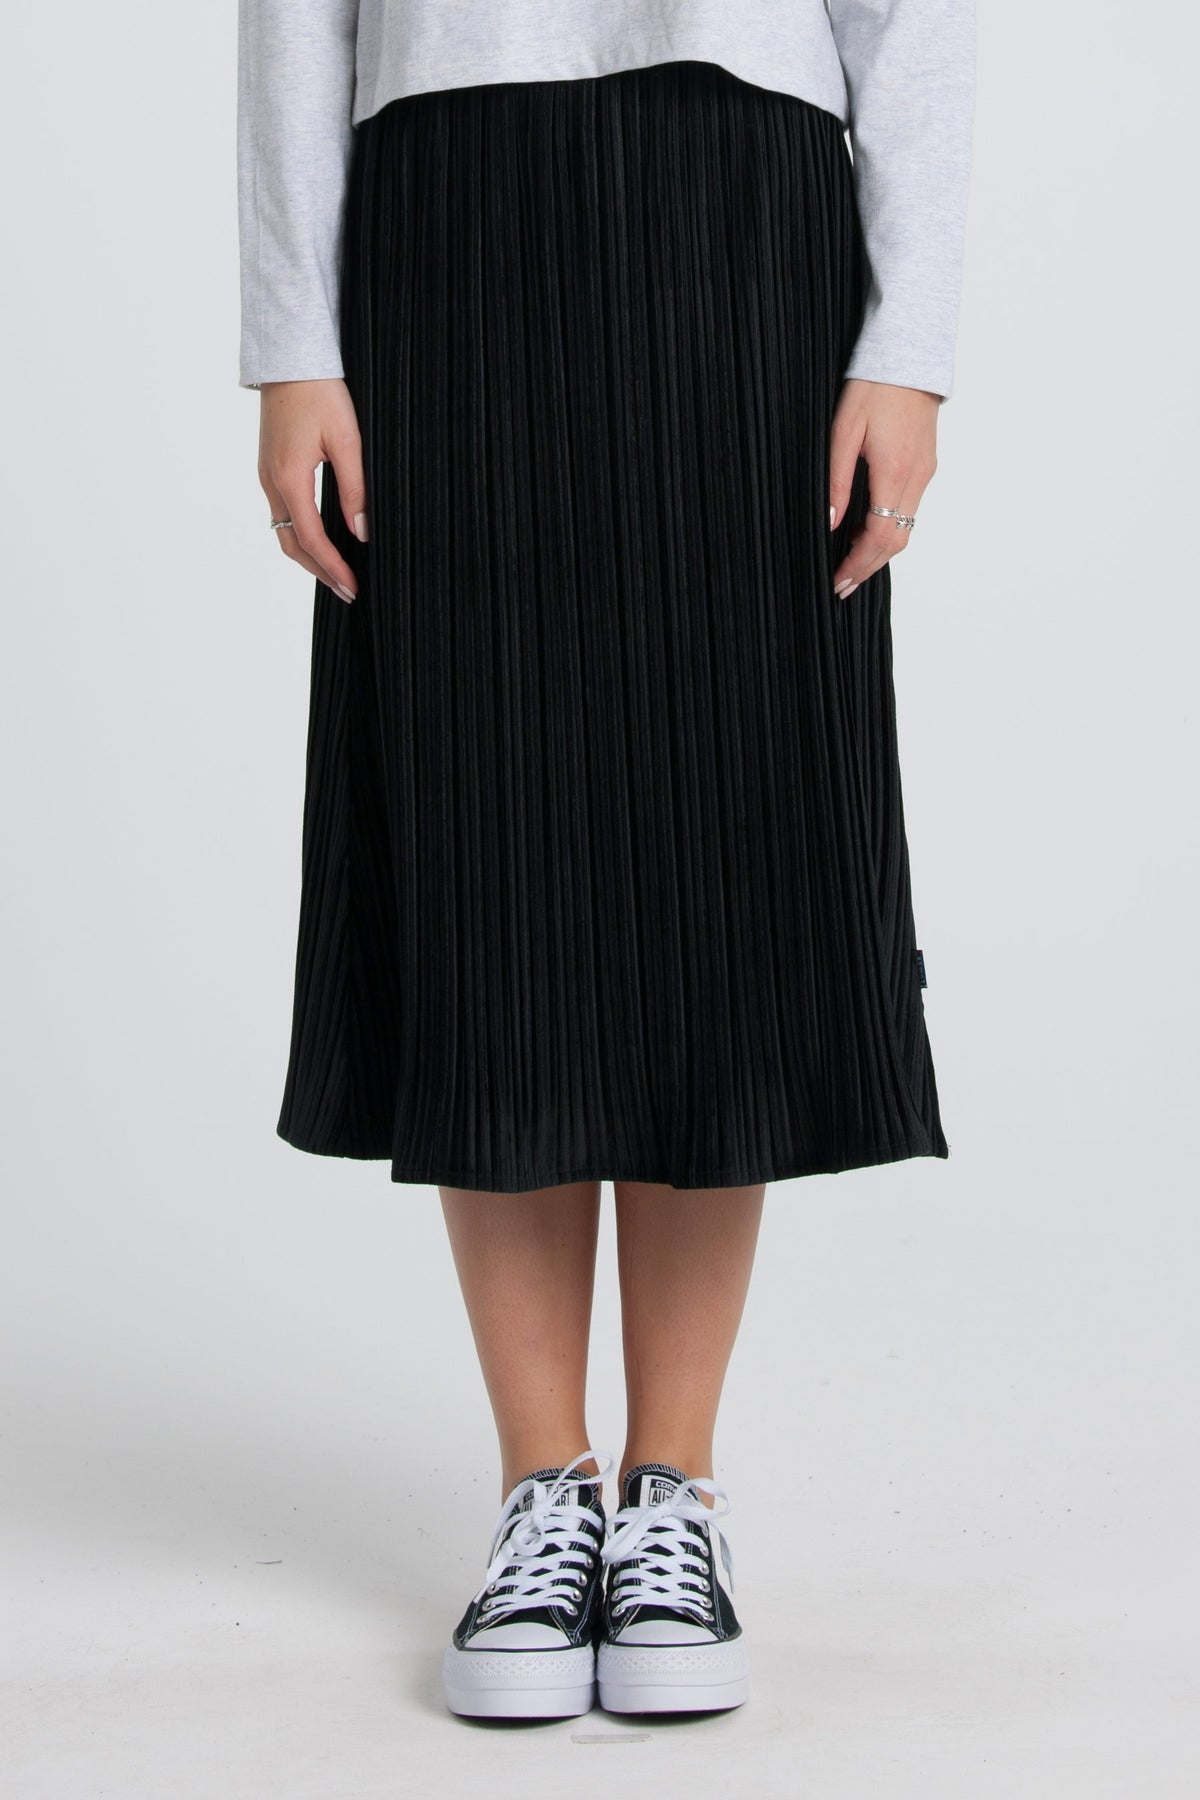 Velvet Pleat Skirt - Black